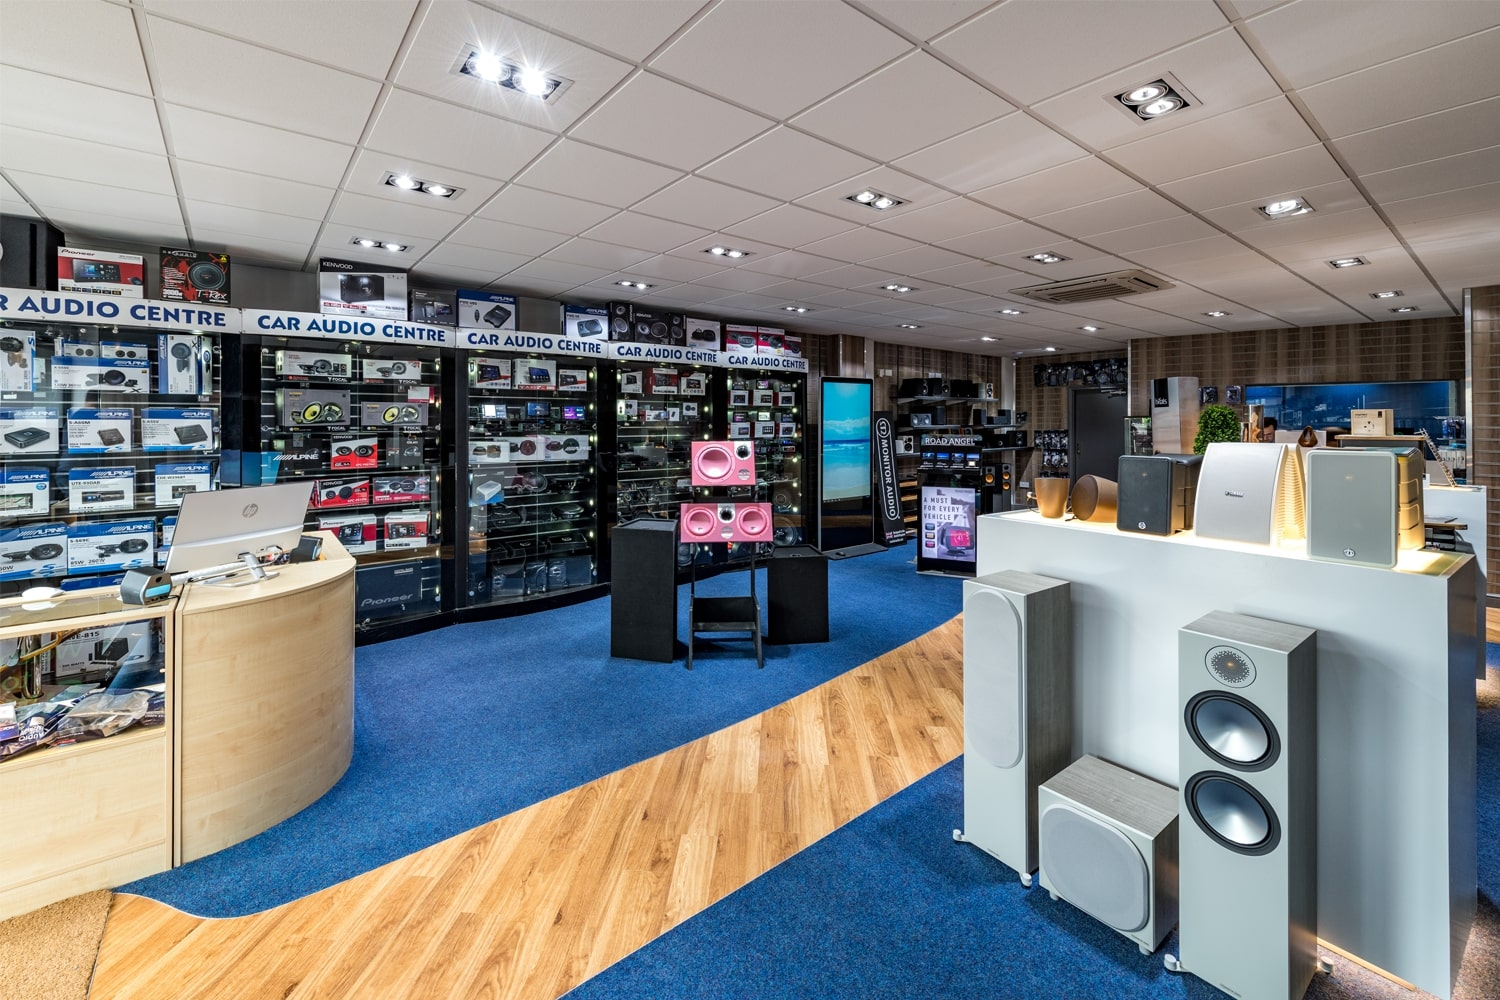 Car Audio Centre nottingham 2